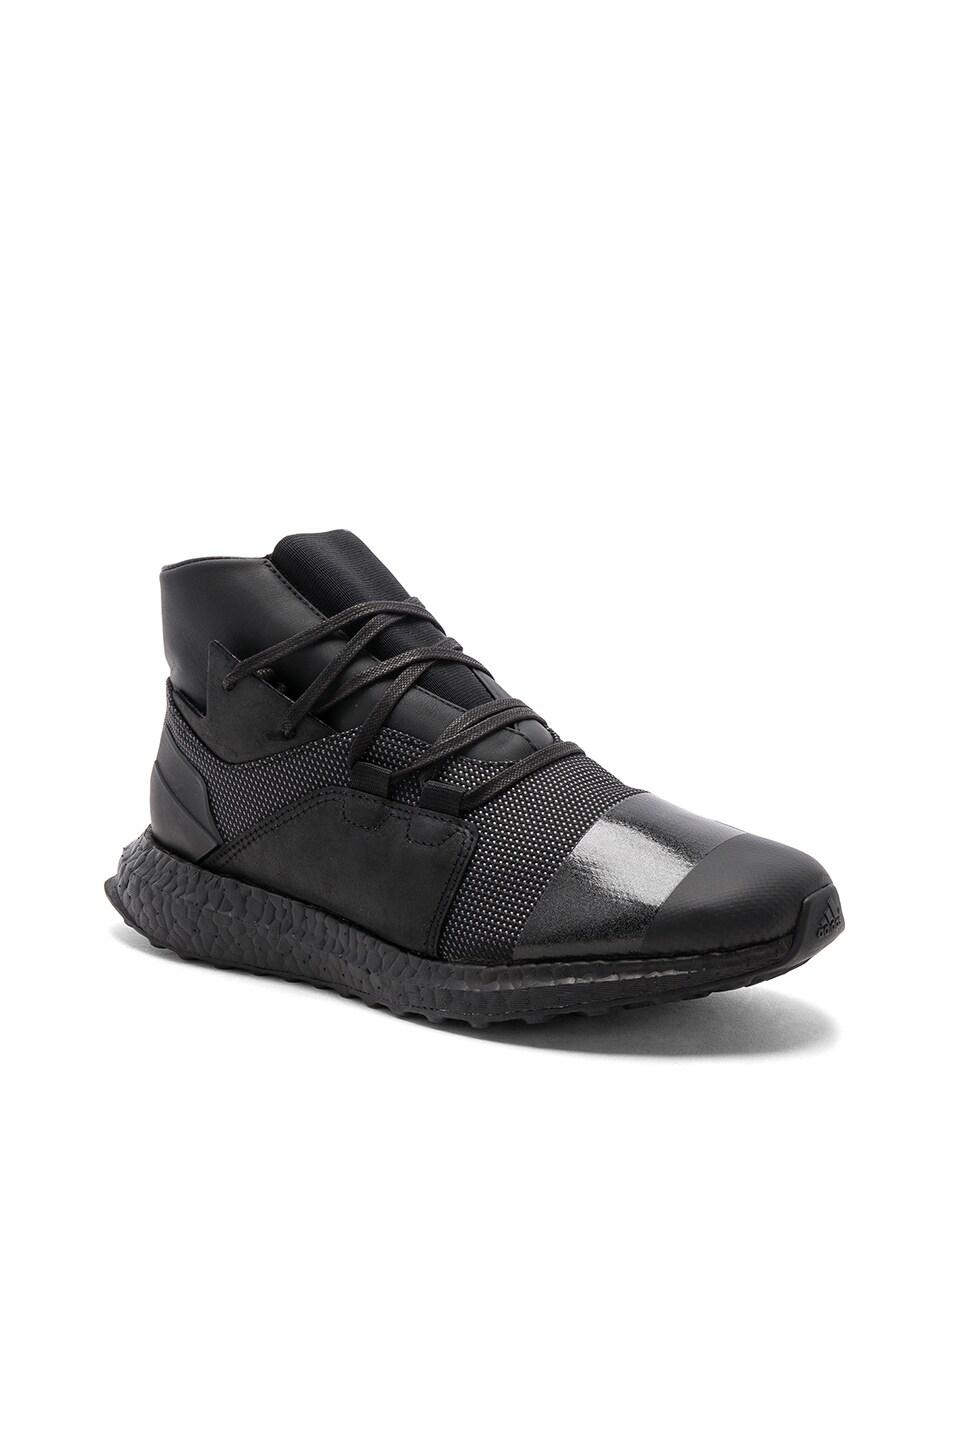 80cb17df0 Image 1 of Y-3 Yohji Yamamoto Kozoko High in Core Black   FTW White